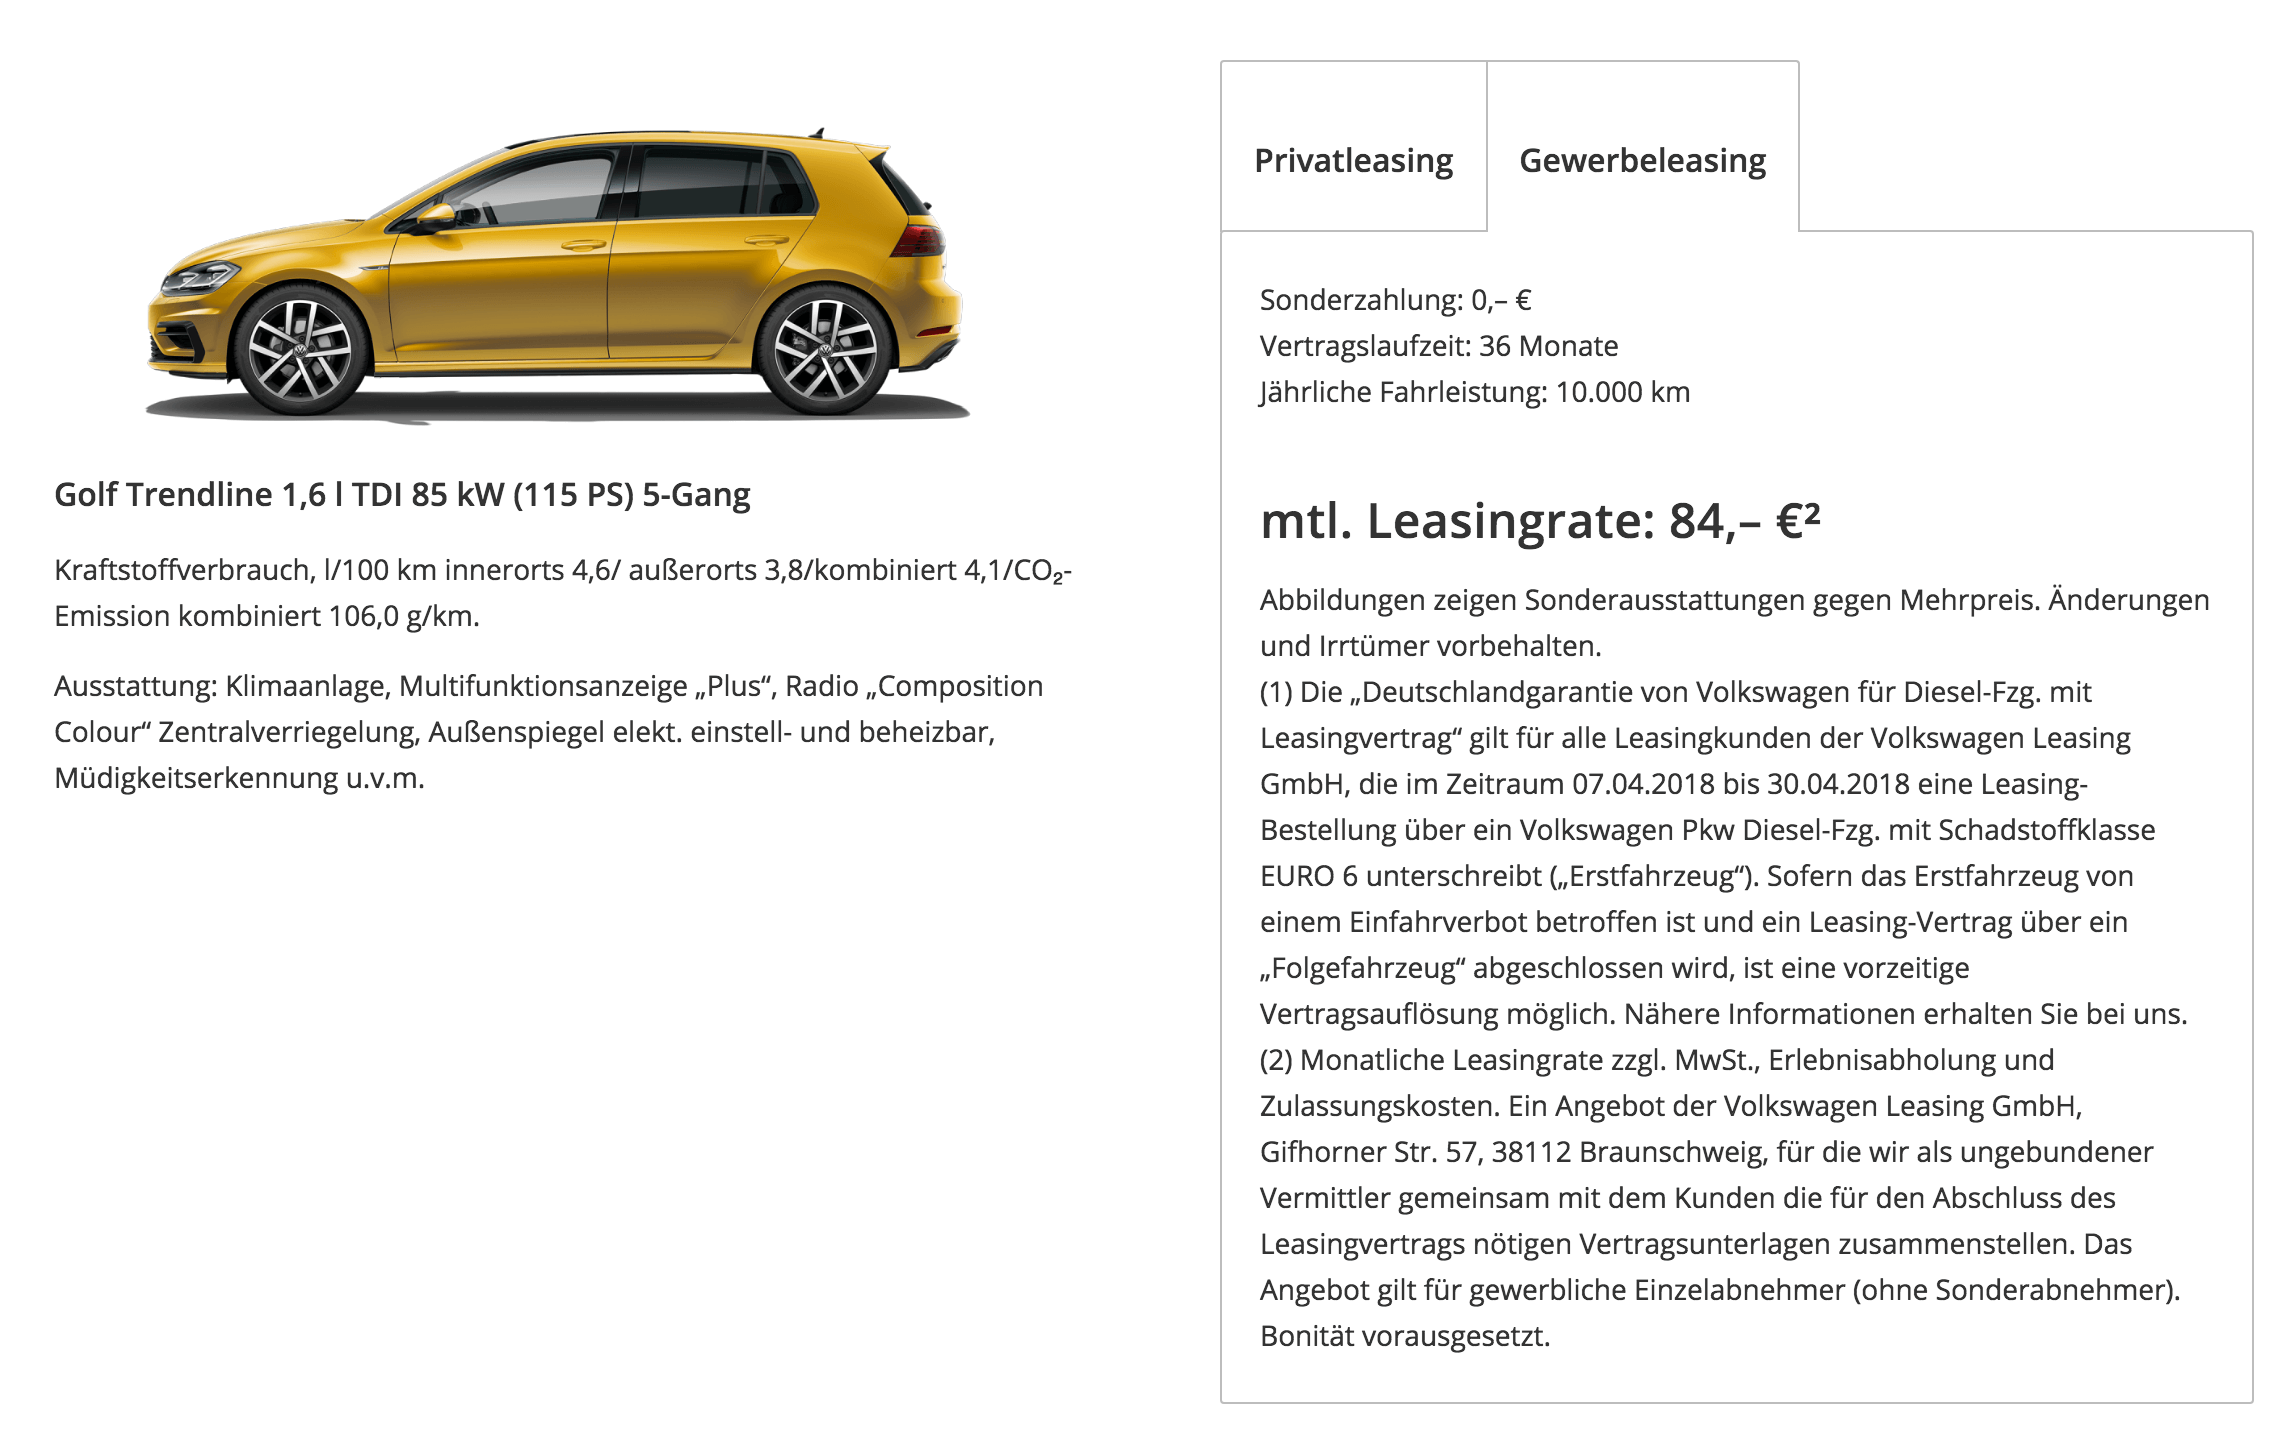 vw leasing bei pl tz mit deutschland garantie z b golf f r 84 euro im monat netto. Black Bedroom Furniture Sets. Home Design Ideas